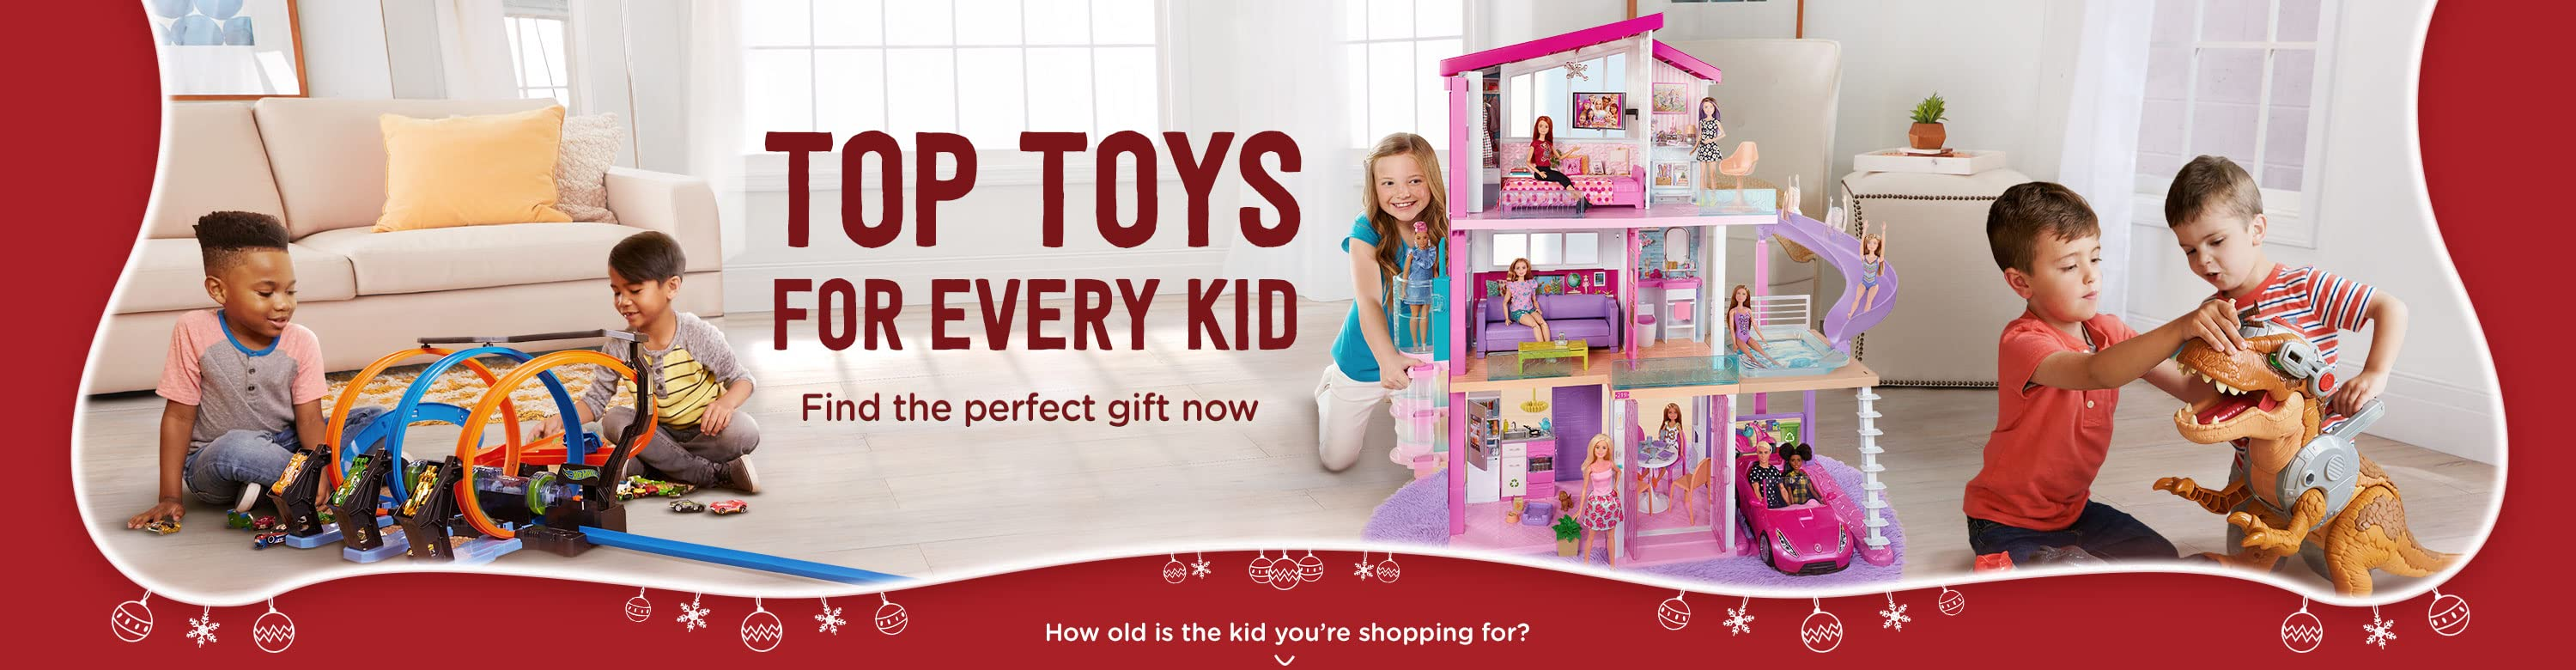 Every kid is unique. Find the perfect gift.